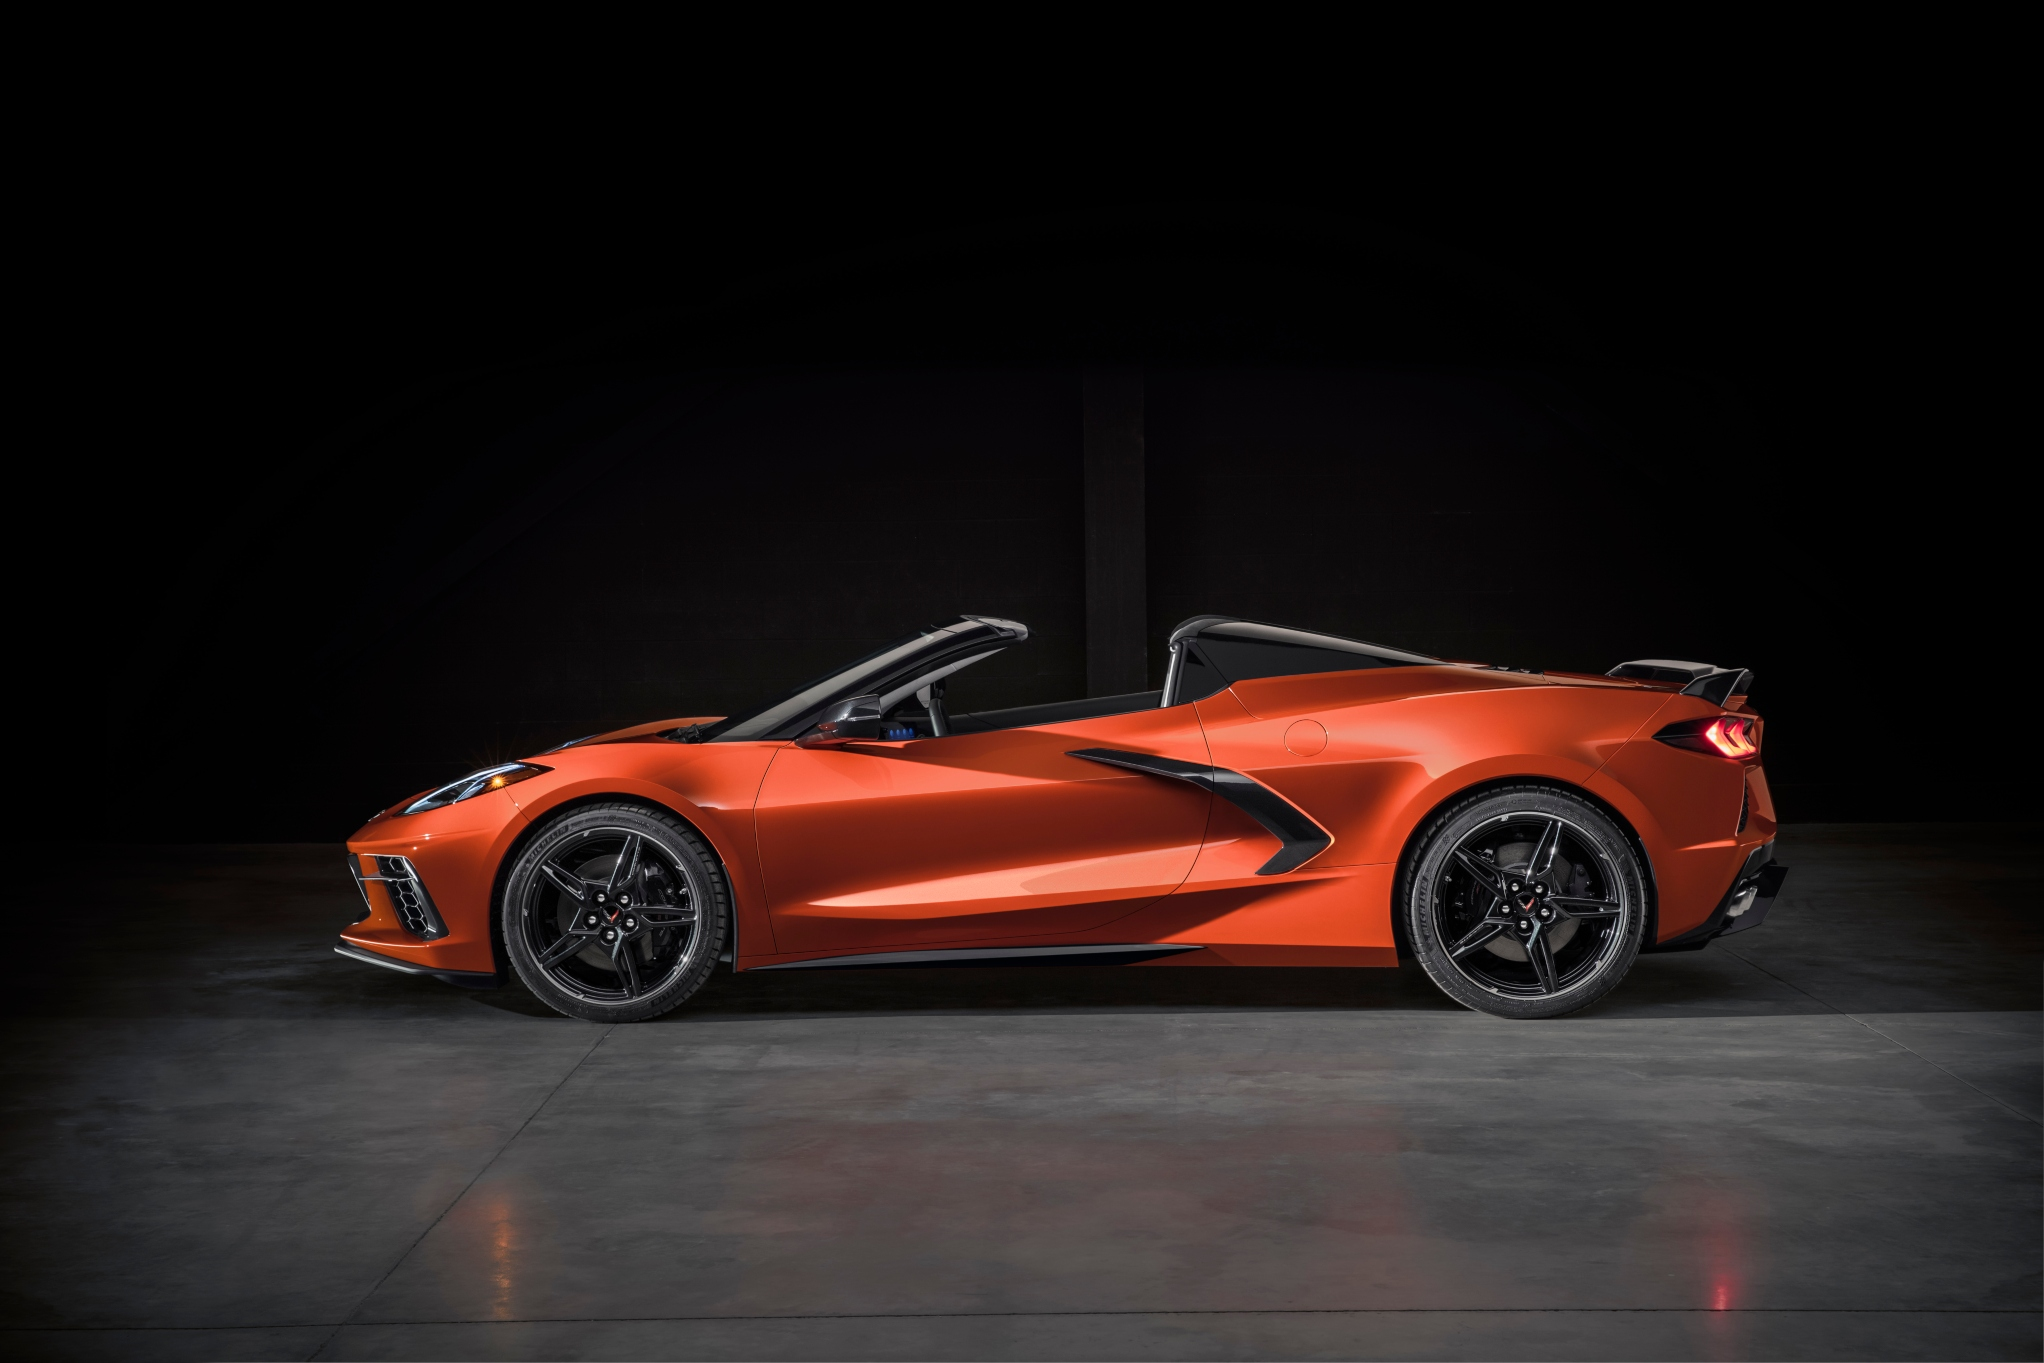 The Corvette Stingray Is Fast On The Road And The Fastest In North American Sales